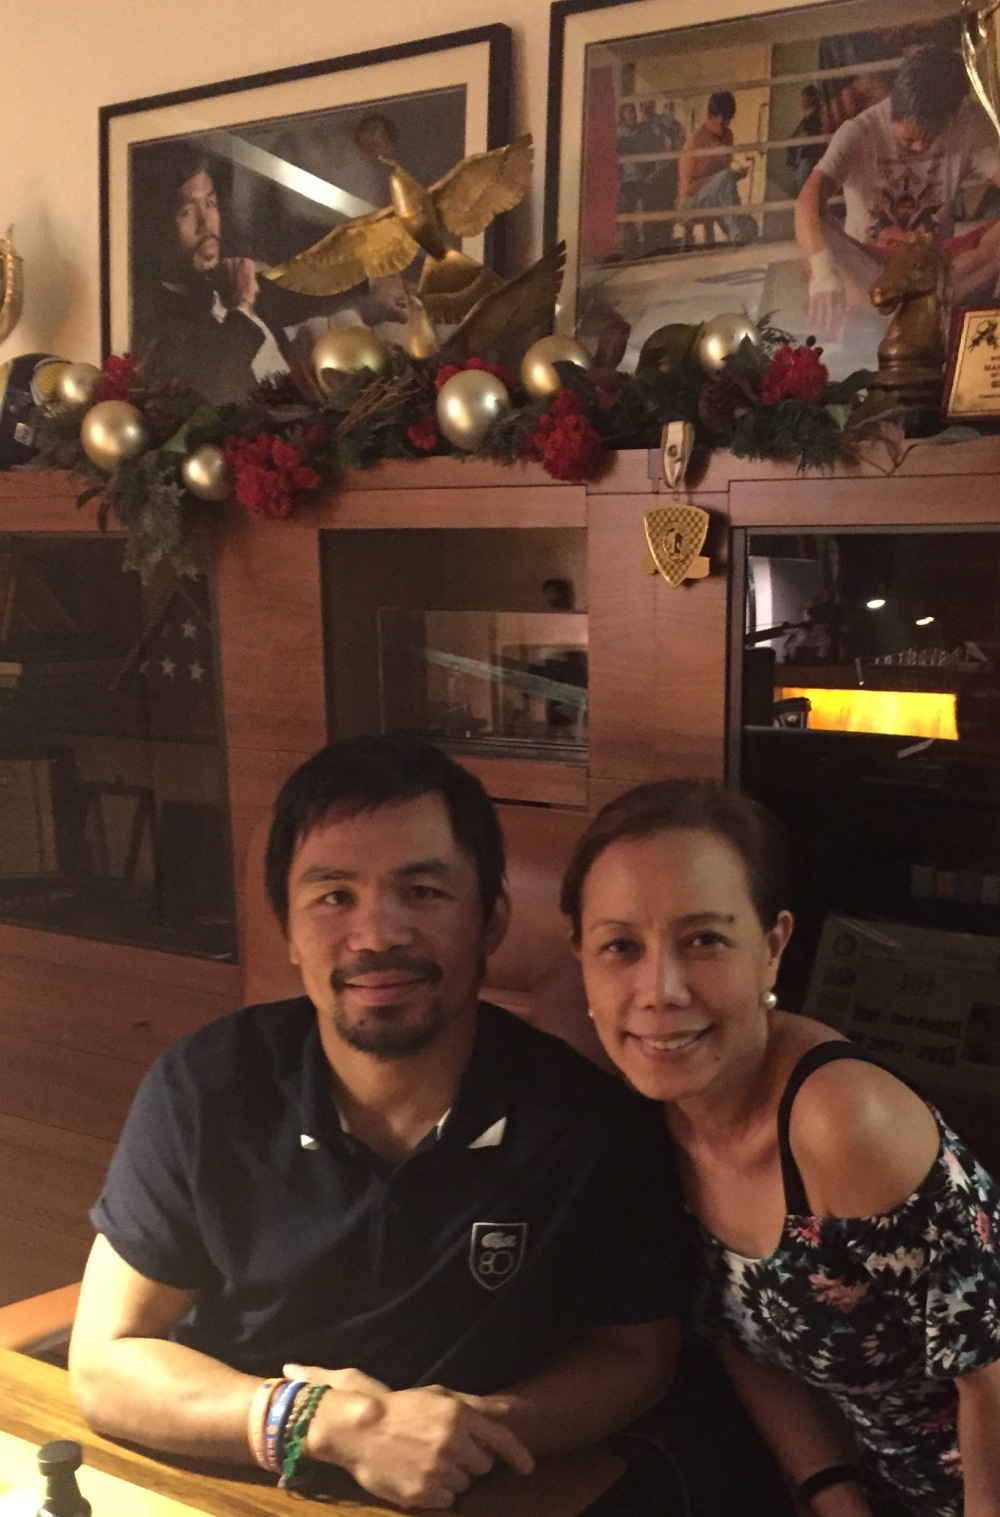 Adele and The Champ, Manny Pacquiao and his living room